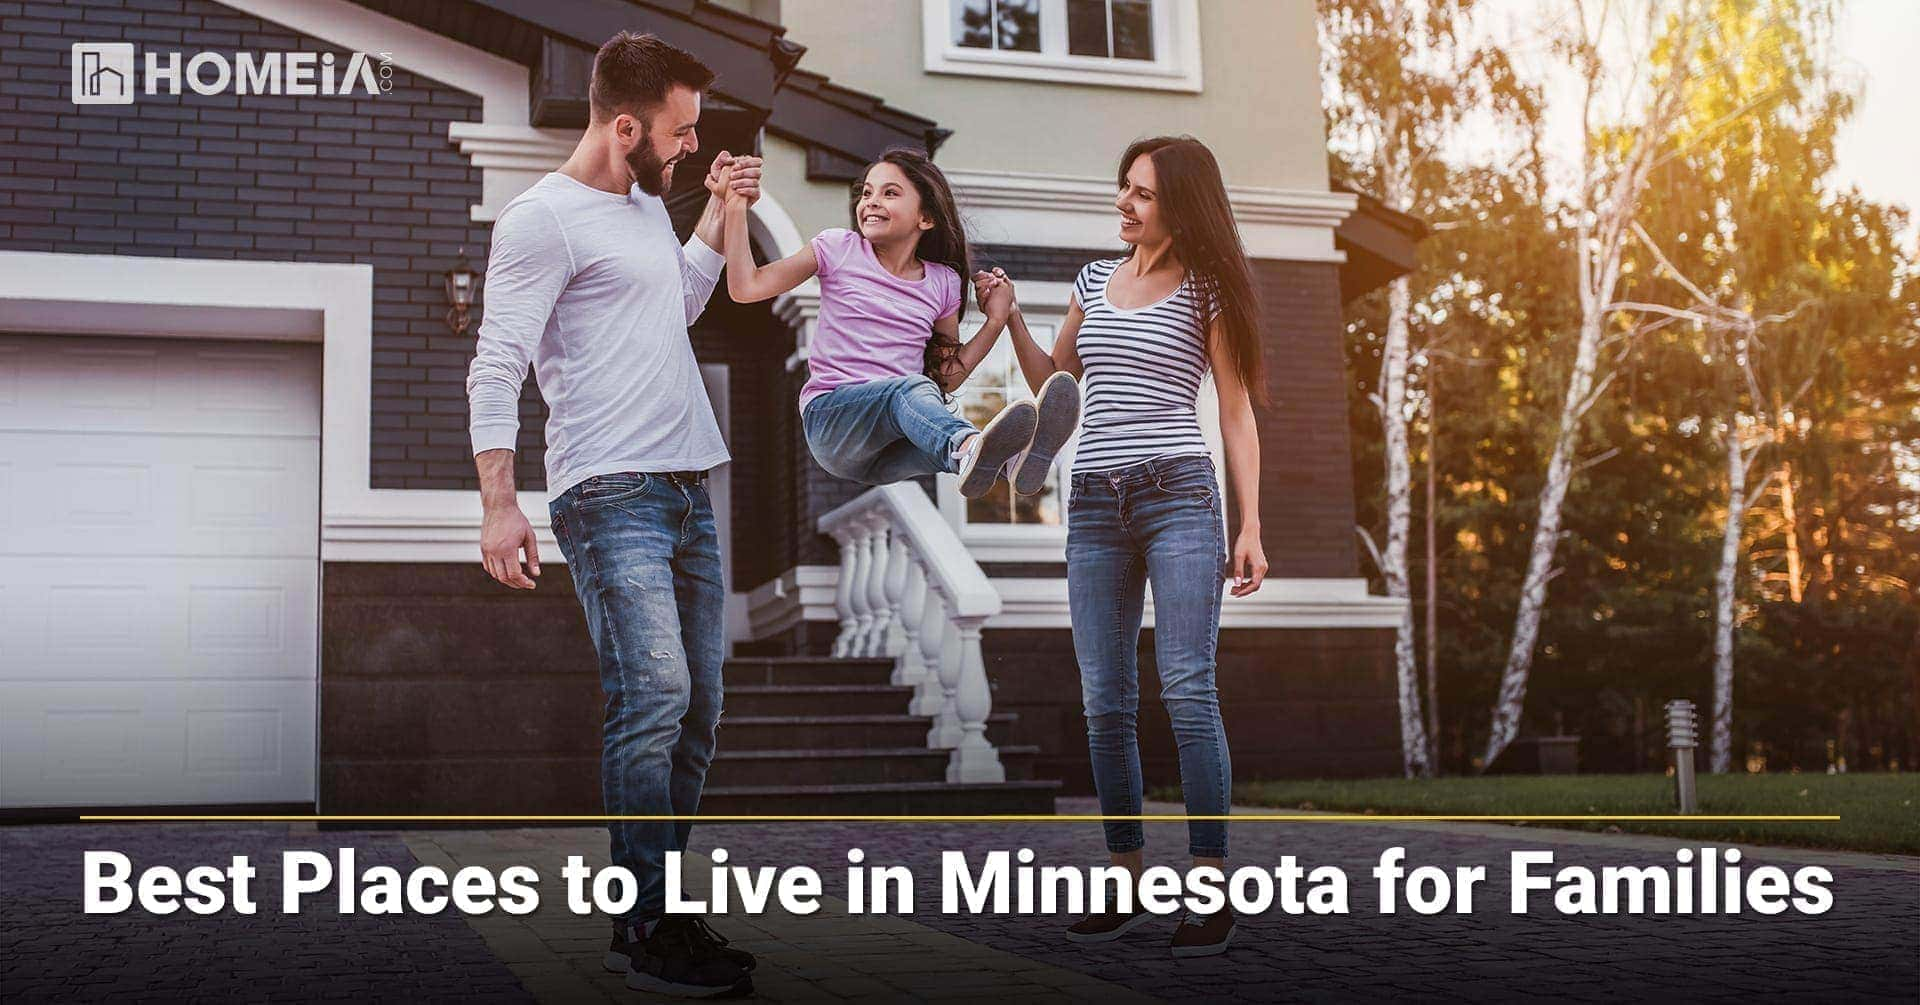 4 Best Places to Live in Minnesota